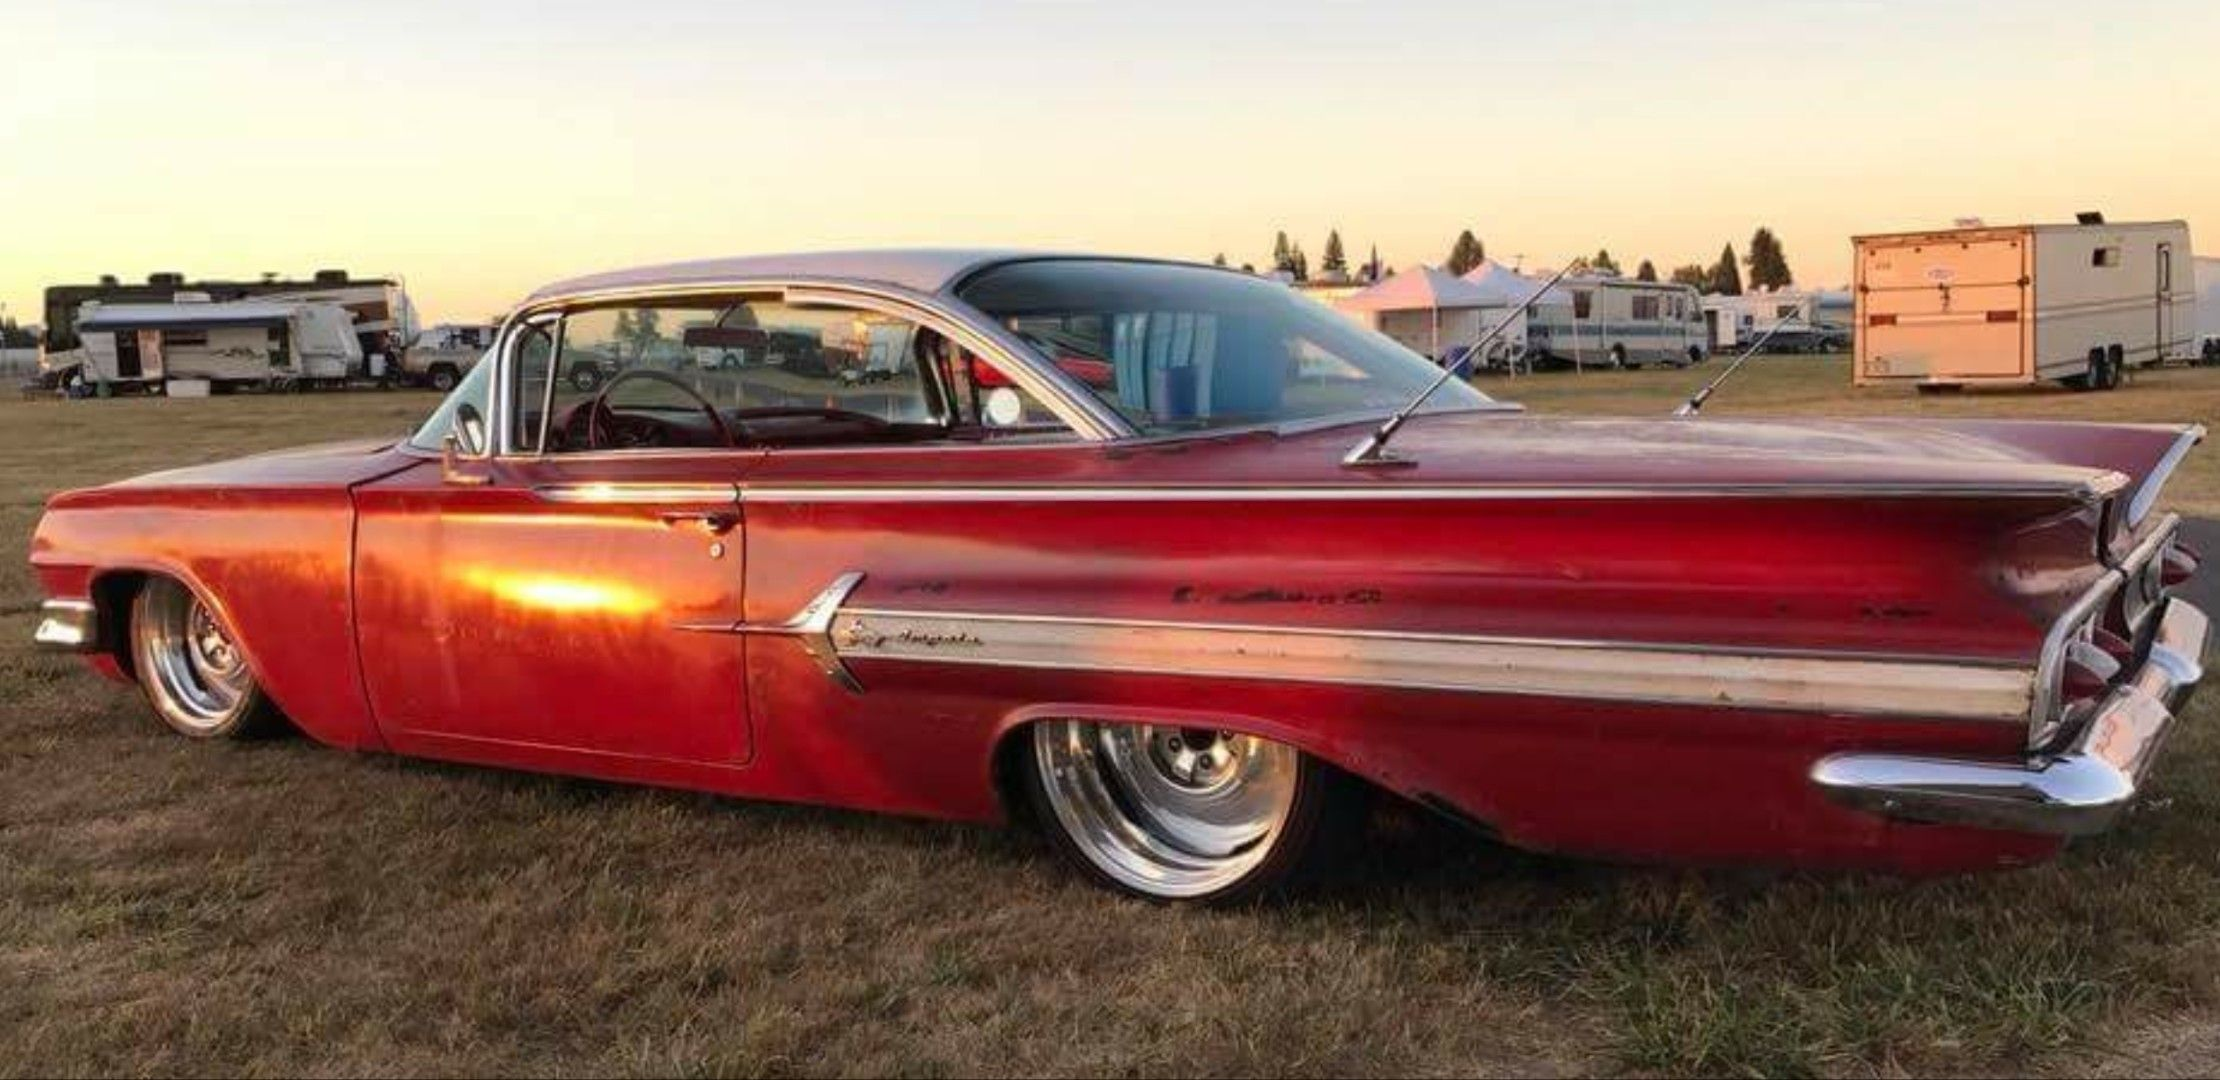 Pin by Mike Camp on 60 impala | Pinterest | Cars